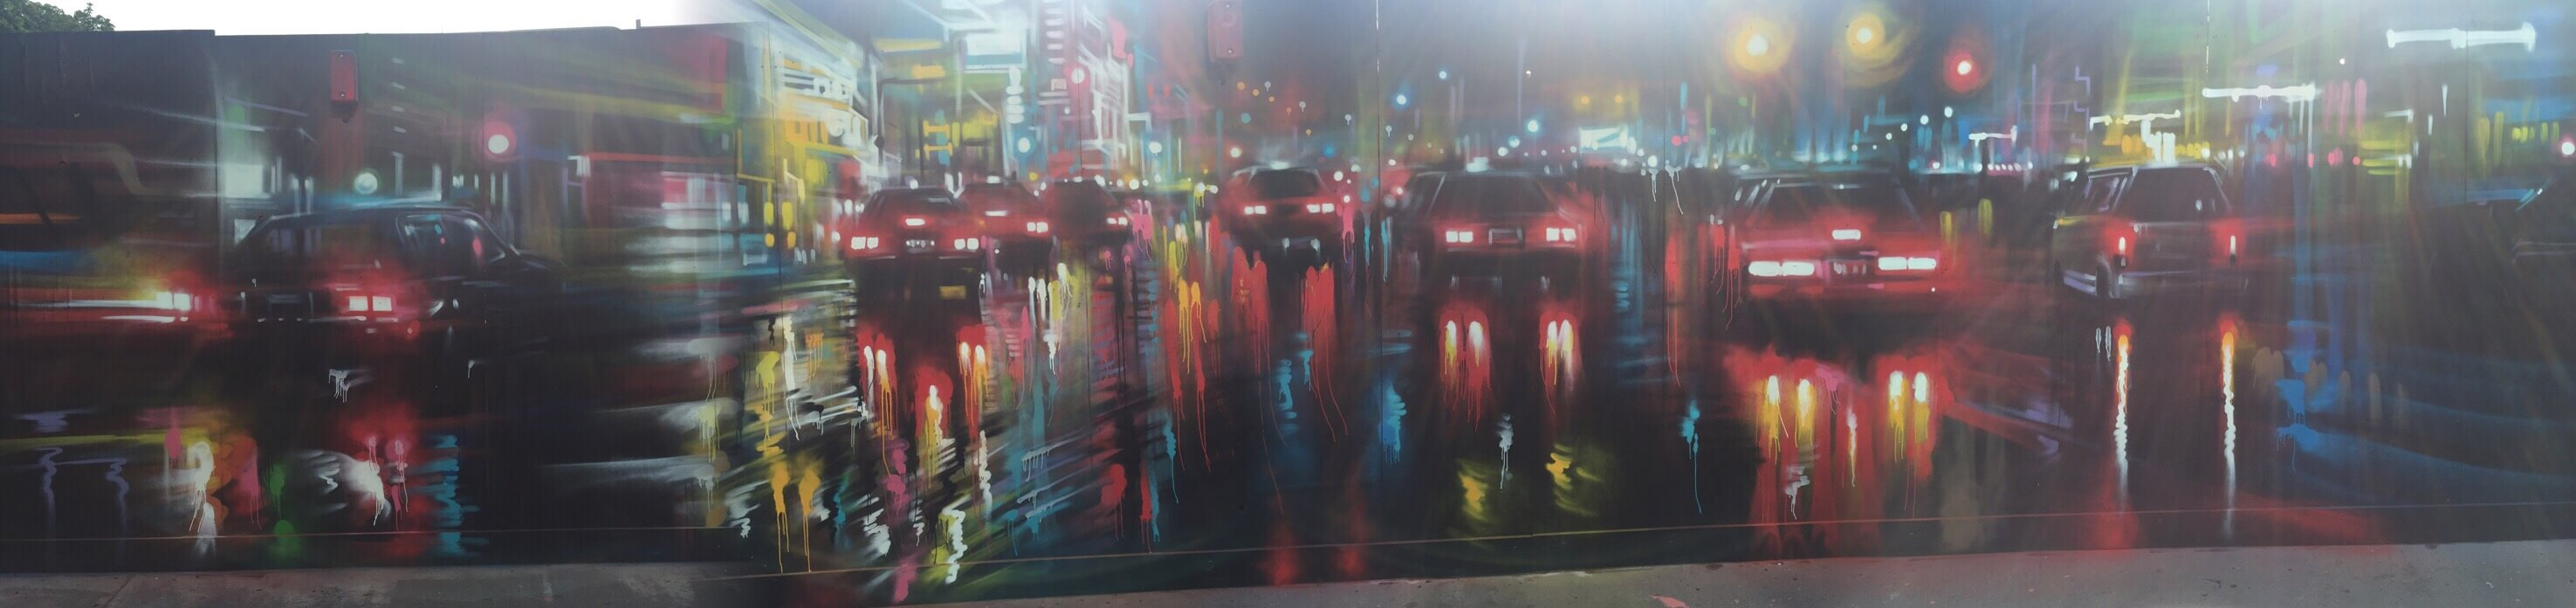 Urban Lights Kitchener New Dan Kitchener Work Croydon Street Art